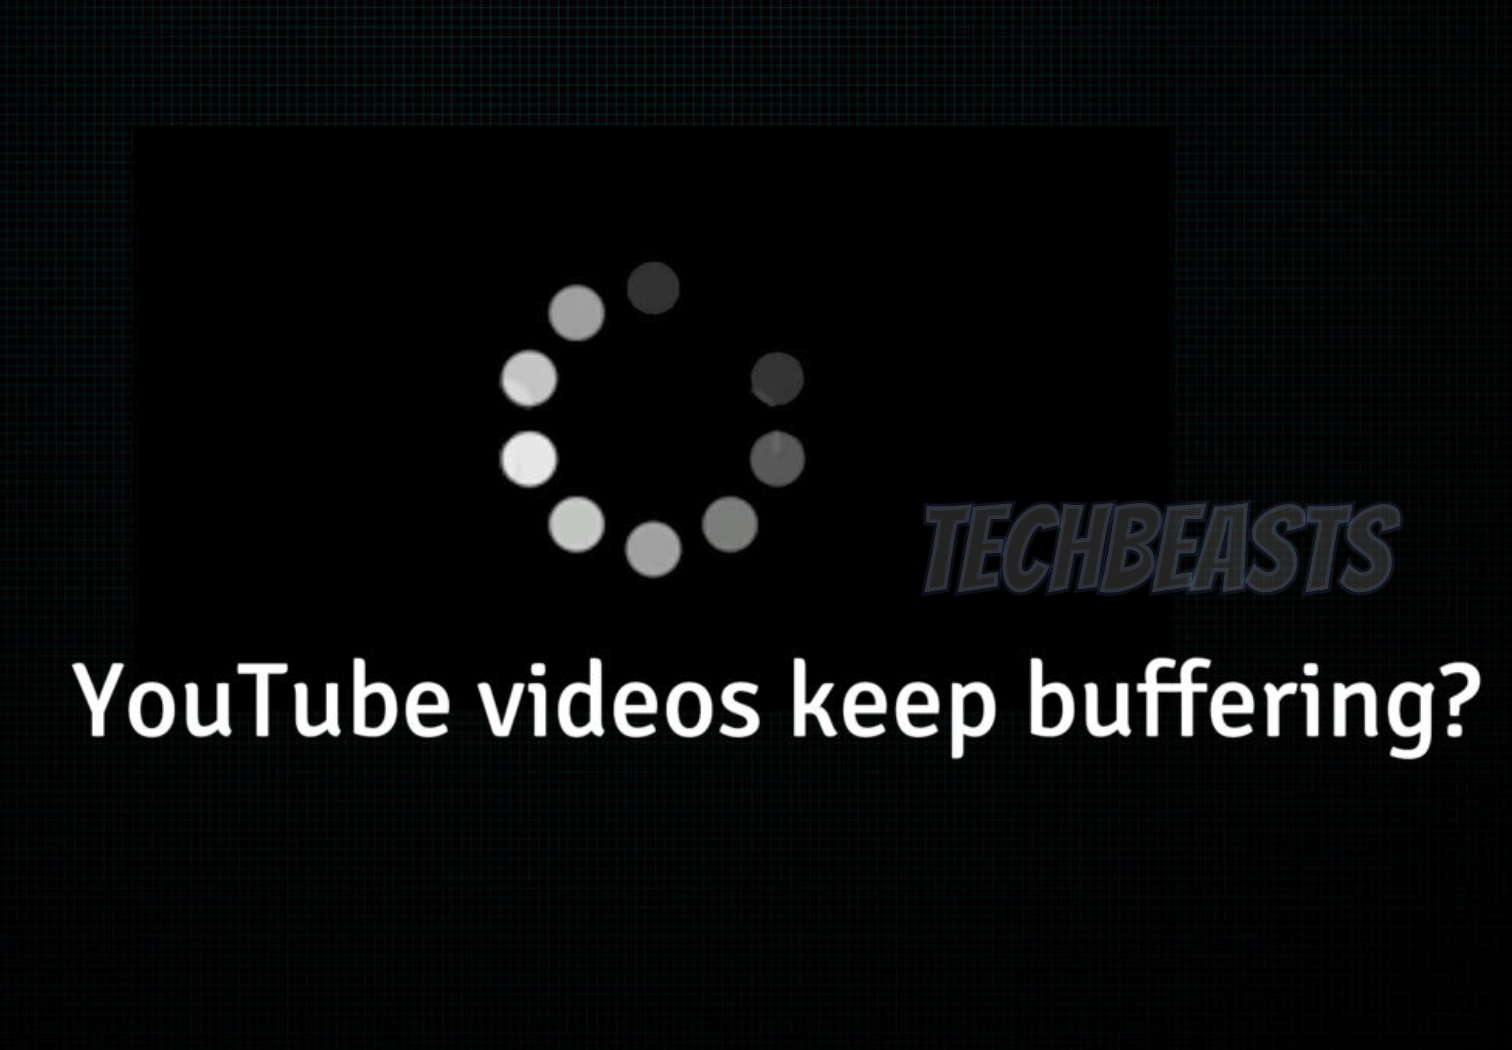 YouTube videos keep buffering